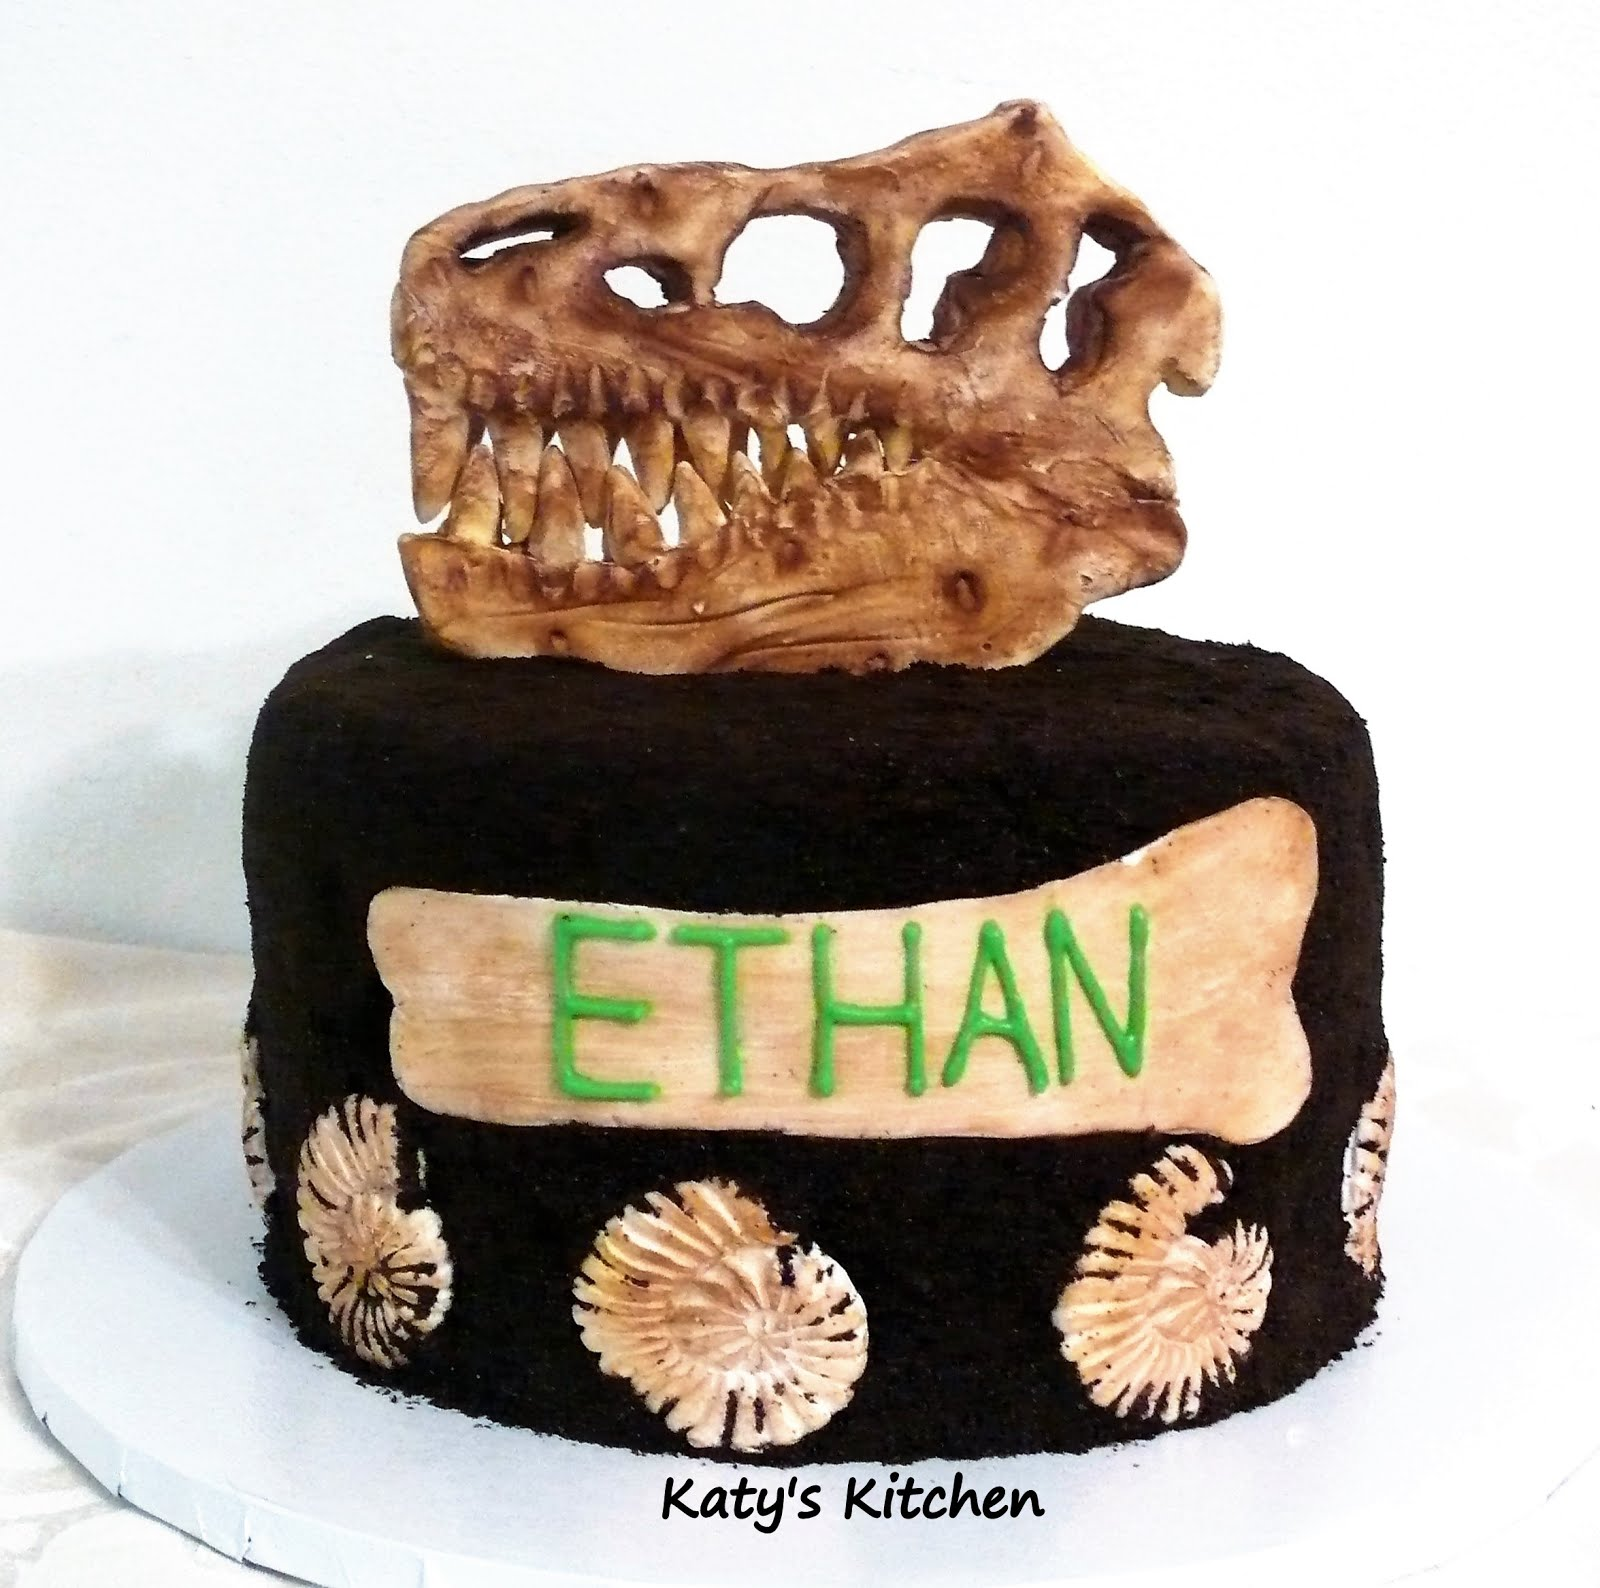 Wondrous Katys Kitchen T Rex Dinosaur Fossil Birthday Cake With Ammonites Personalised Birthday Cards Paralily Jamesorg